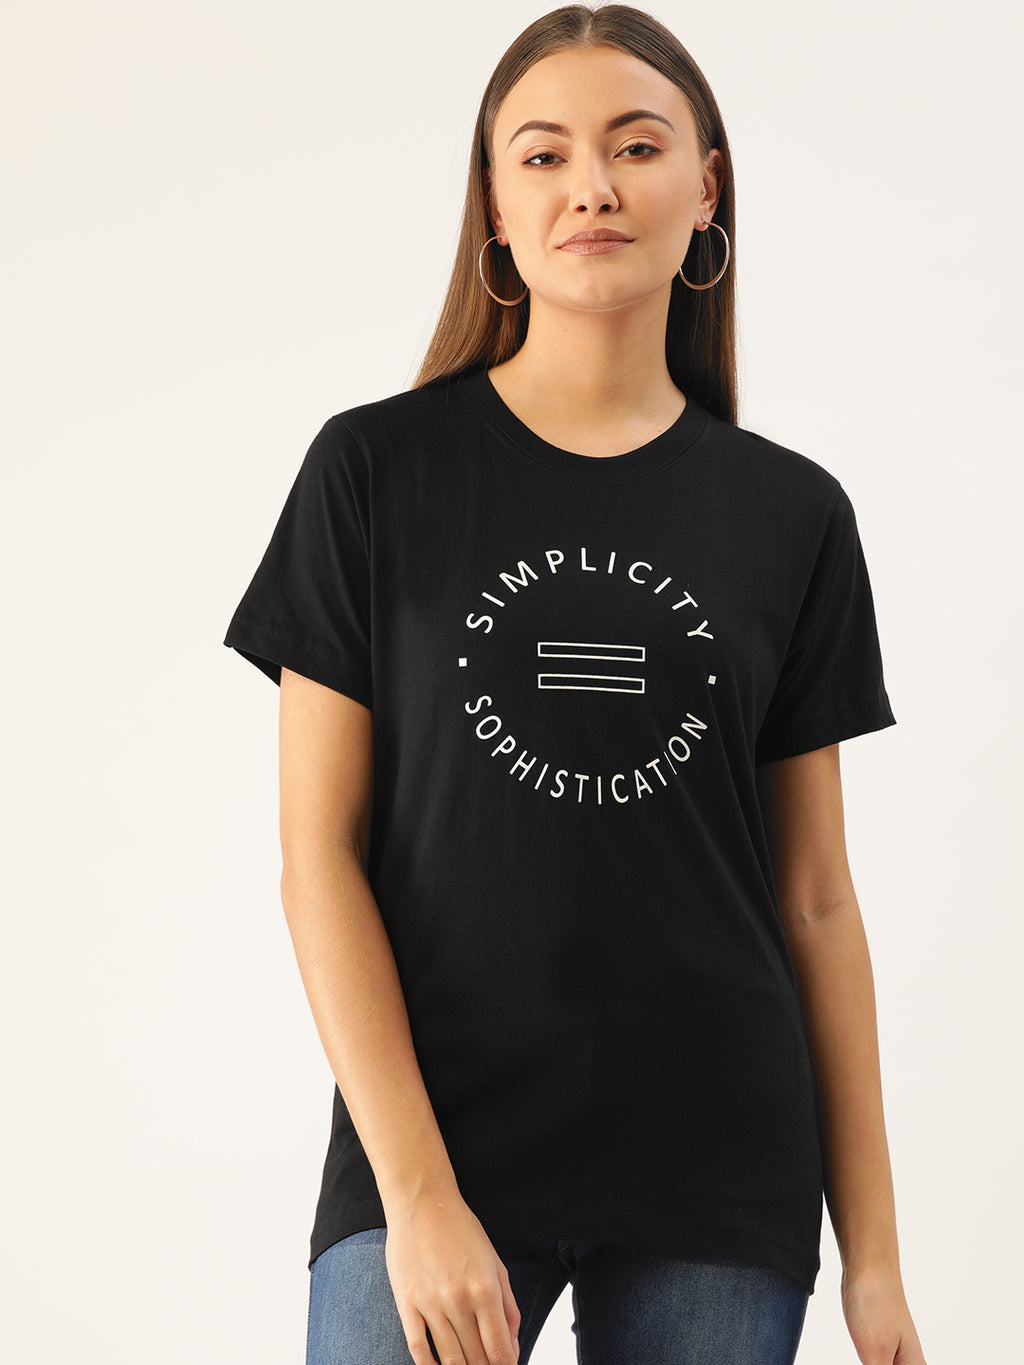 Simplicity is Sophistication Women Black T-Shirt - YOLOCLAN